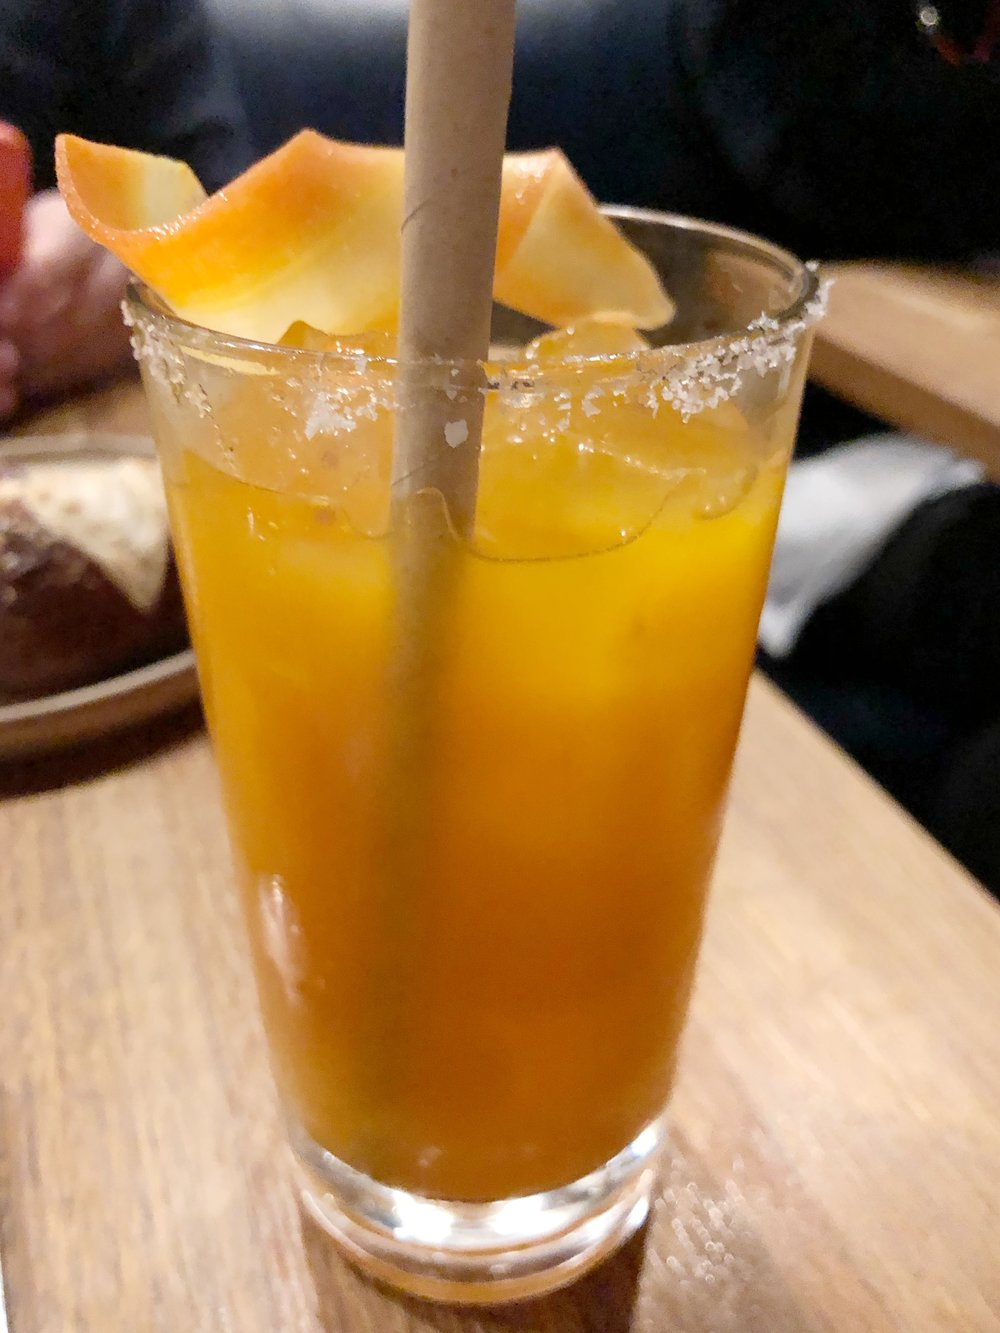 SEa Buckthorn & Tequila - We are sea buckthorn and tequila aficionados, and this drink didn't disappoint. Sea buckthorn is slightly sour, which kept this drink from being syrupy sweet. I would take another one right now, please and thank you.